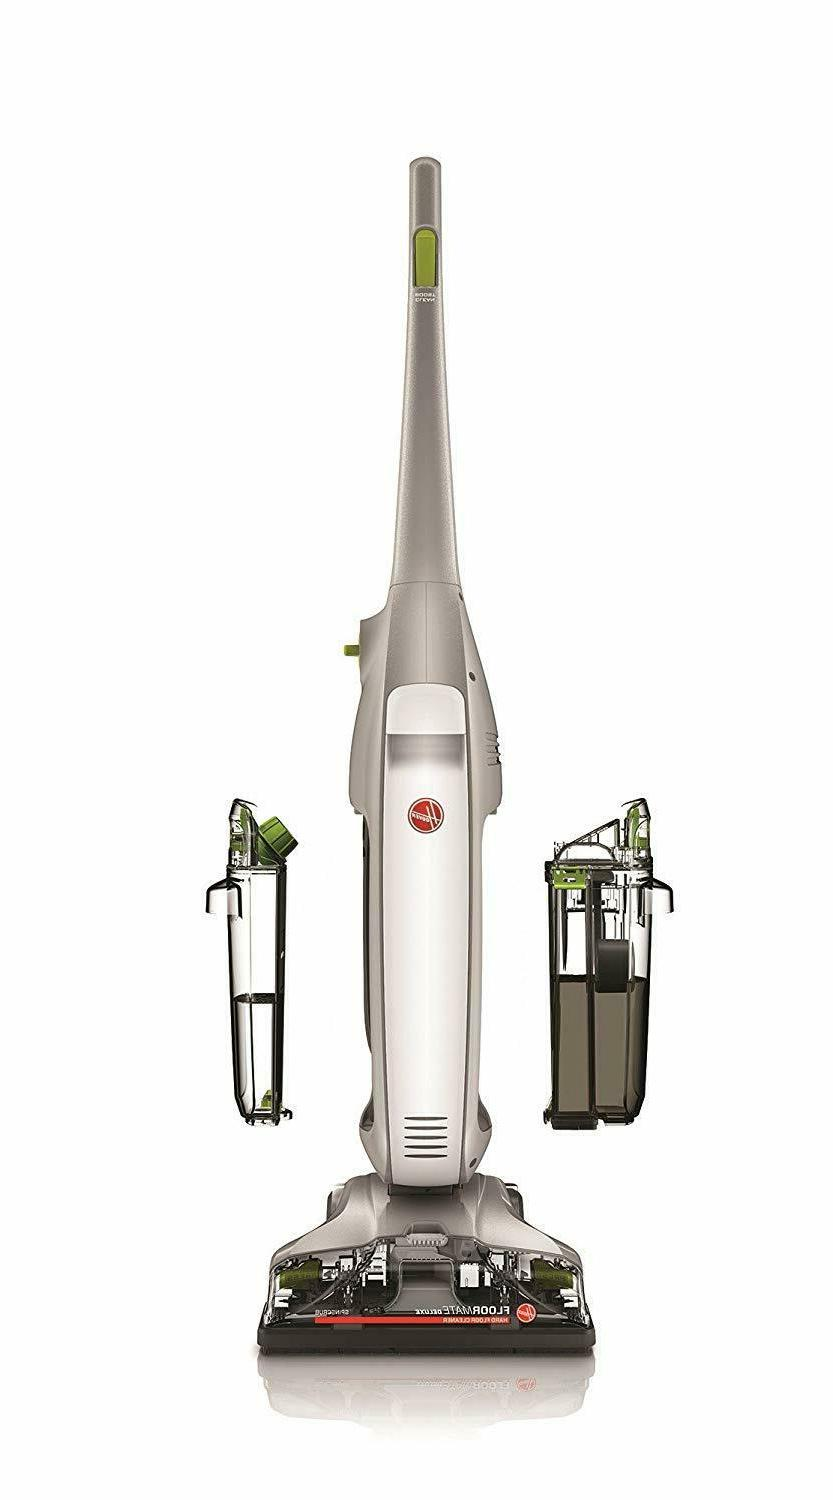 Hoover FloorMate Floor Cleaner, FH40160 Upright Vacuum Cleaner